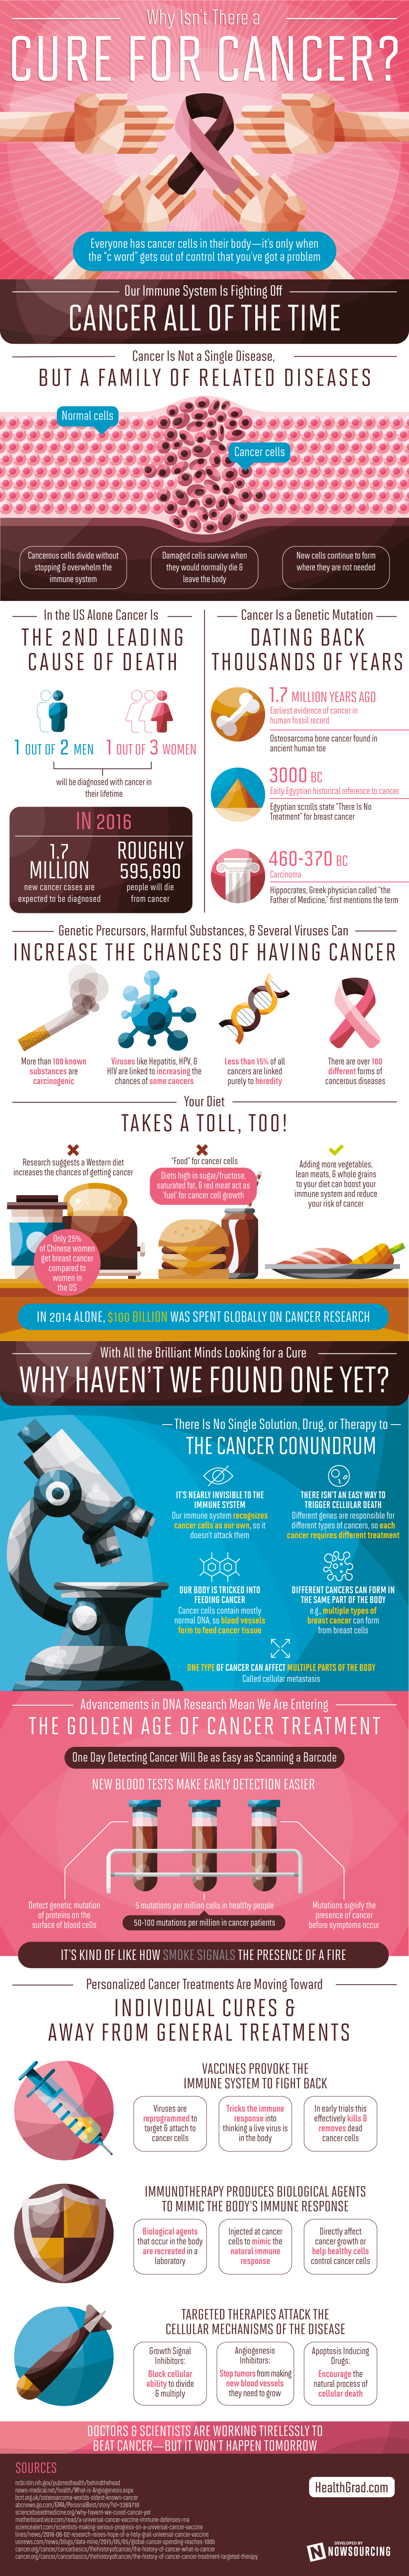 Why Isn't There a Cure for Cancer? [Infographic]